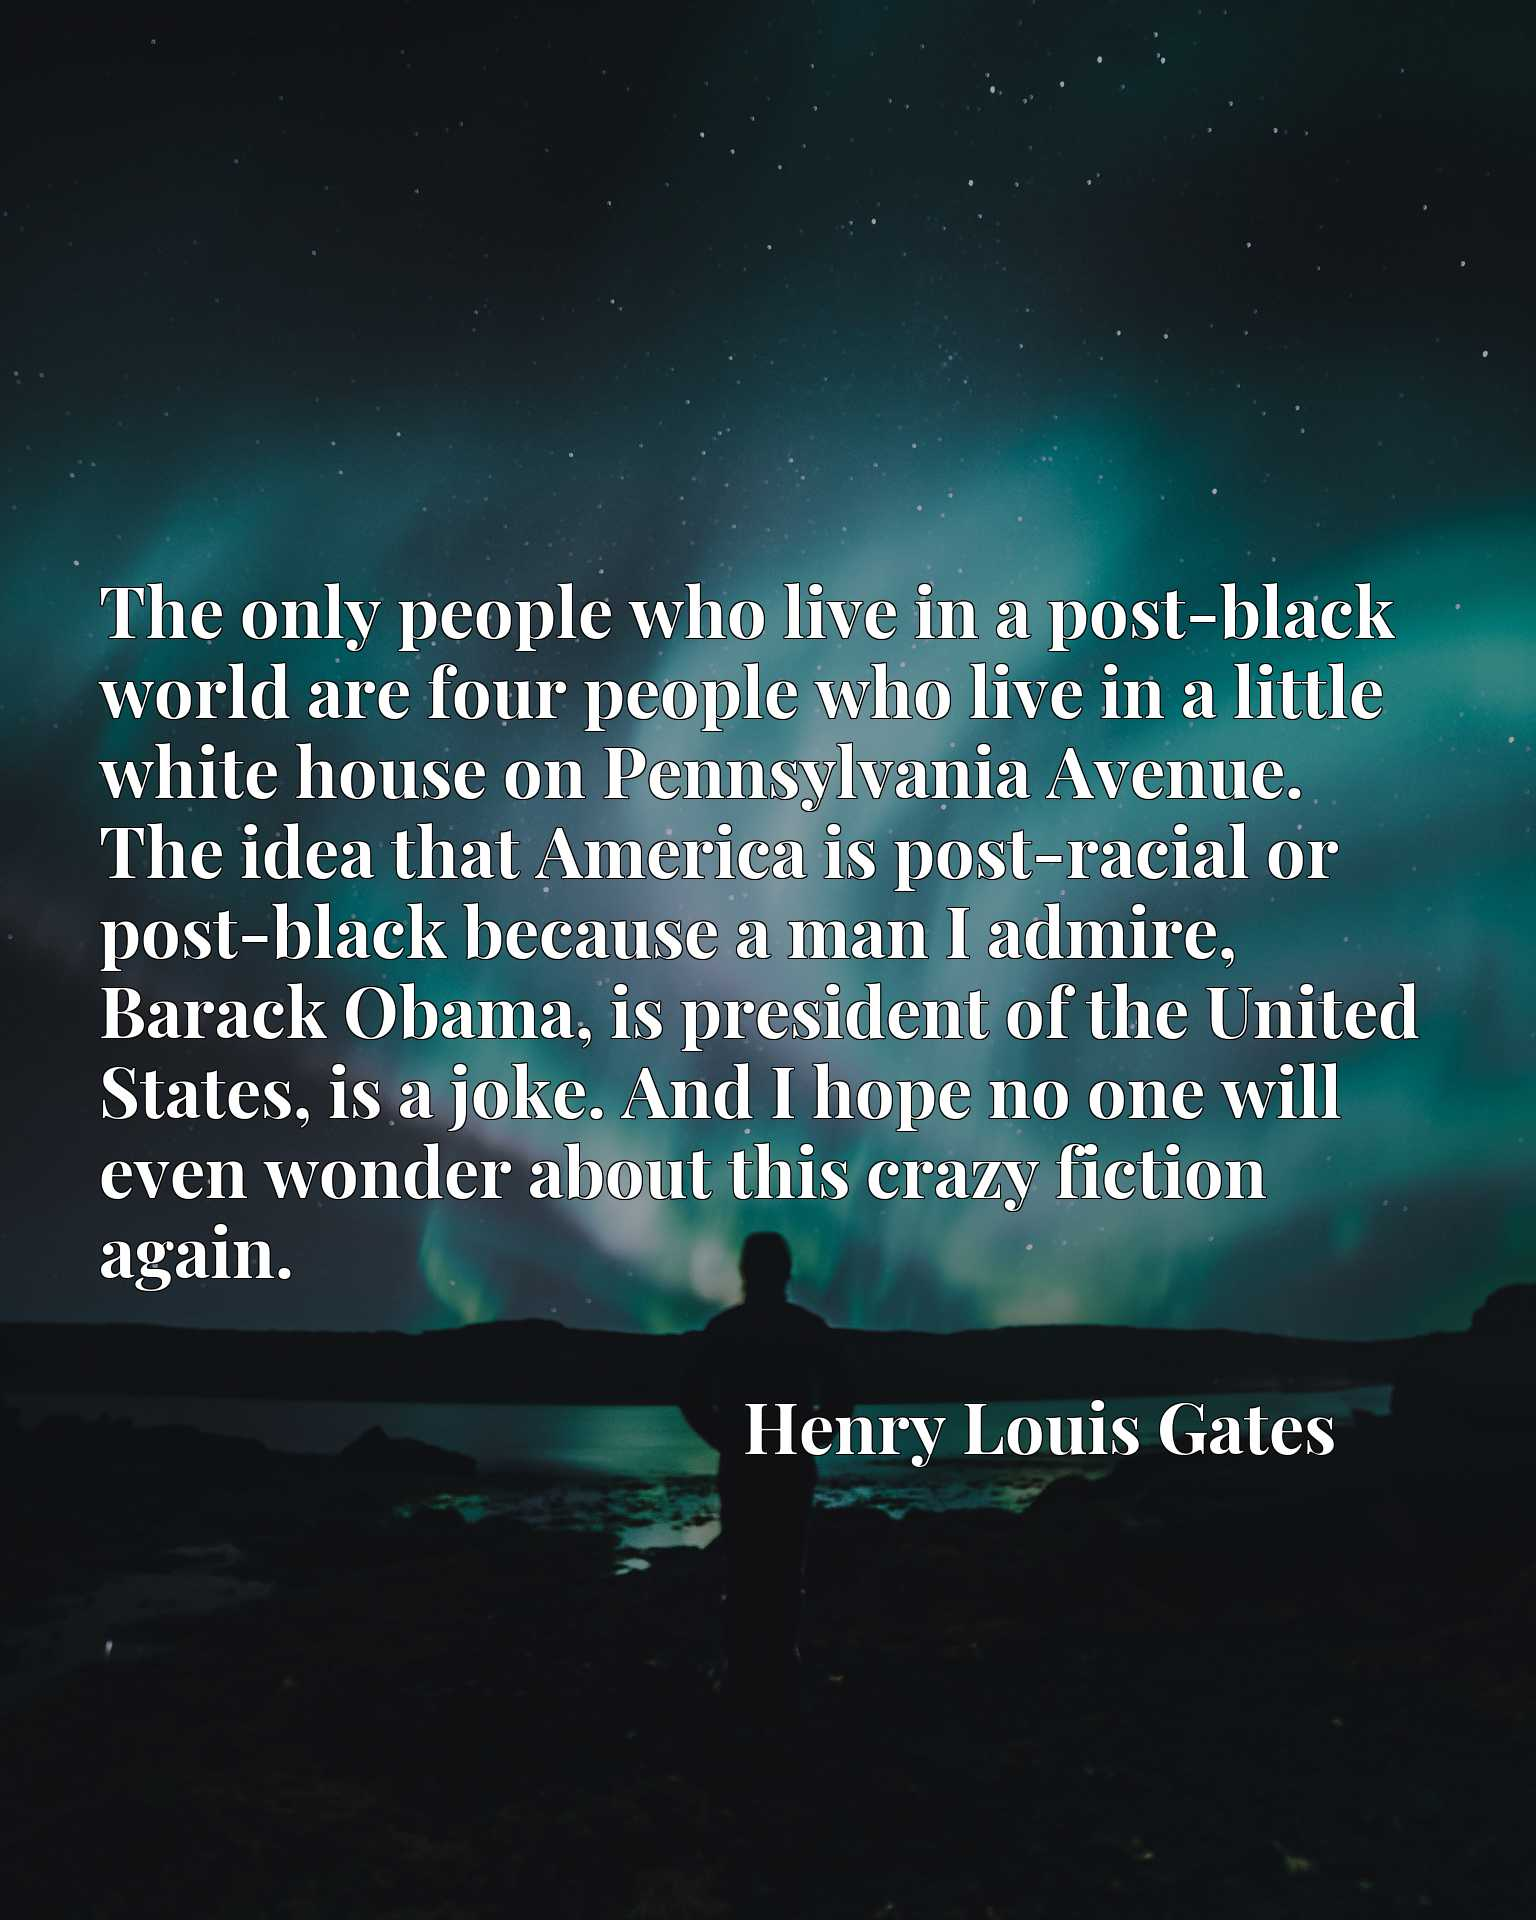 The only people who live in a post-black world are four people who live in a little white house on Pennsylvania Avenue. The idea that America is post-racial or post-black because a man I admire, Barack Obama, is president of the United States, is a joke. And I hope no one will even wonder about this crazy fiction again.